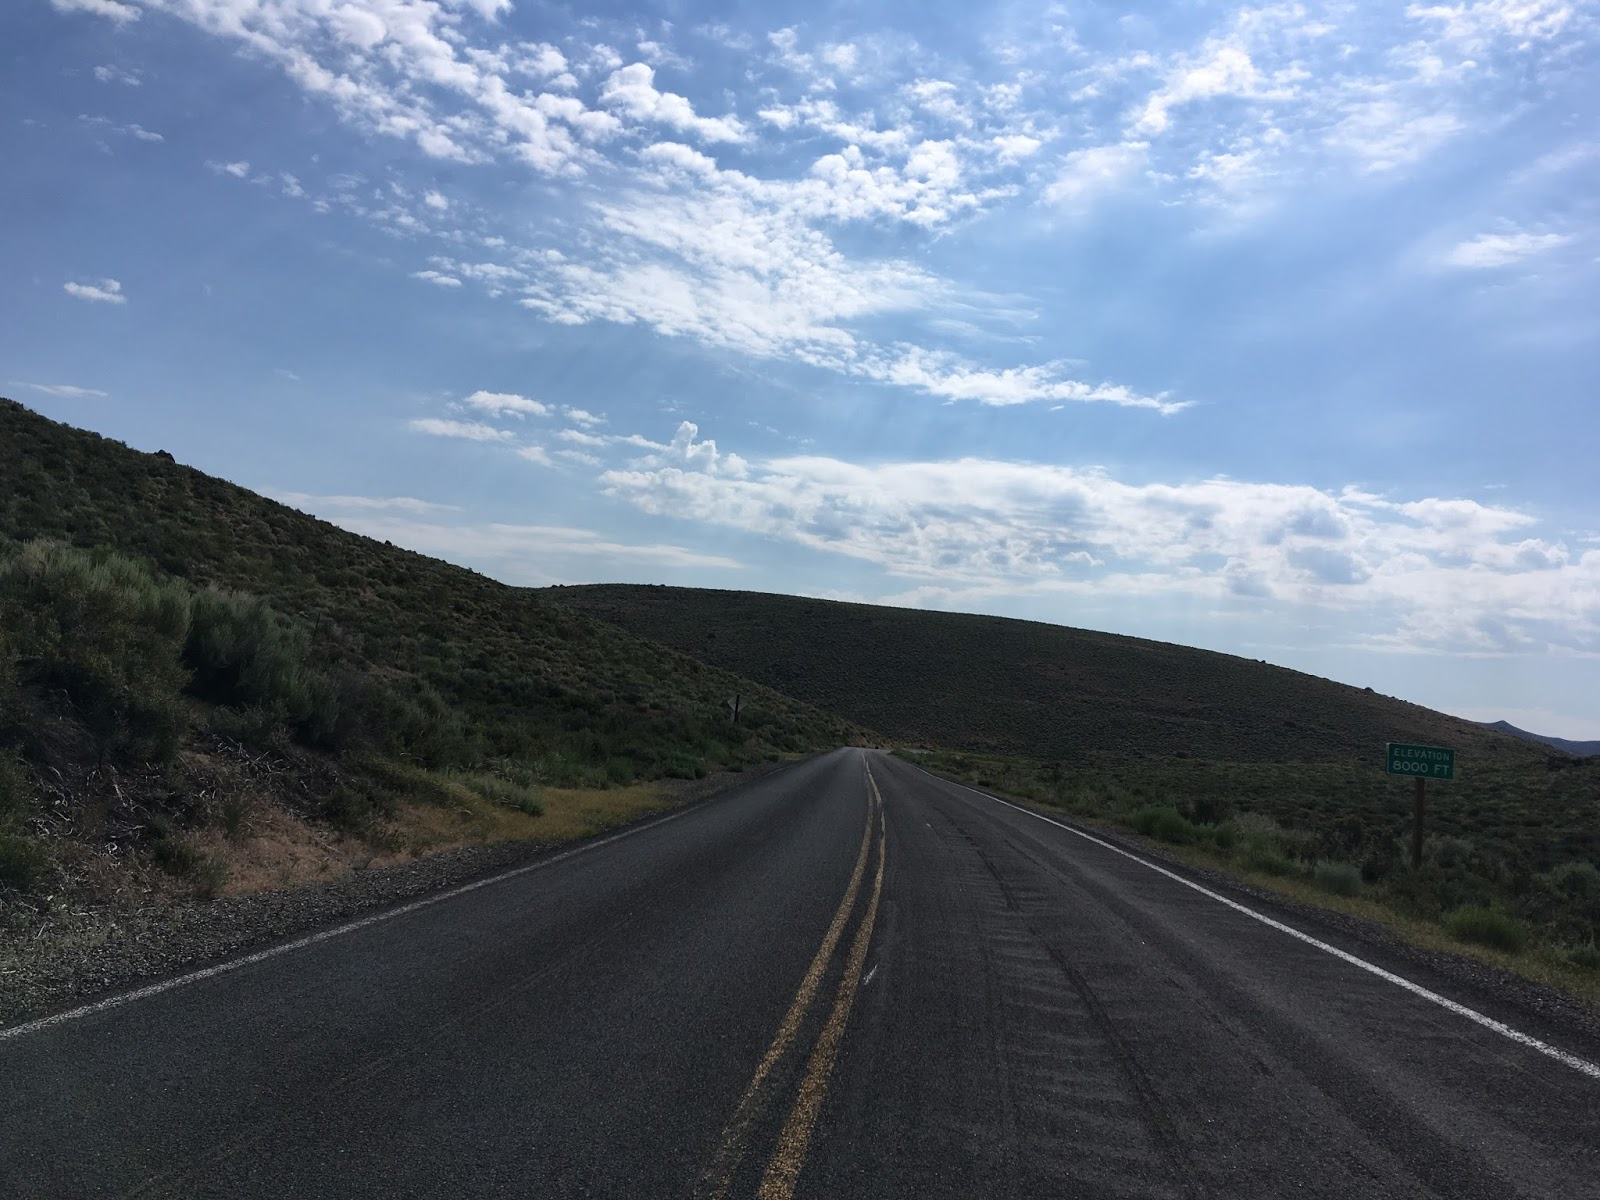 approaching the eastern terminus of ca 270 you are greeted by rough road and pavement ends signage